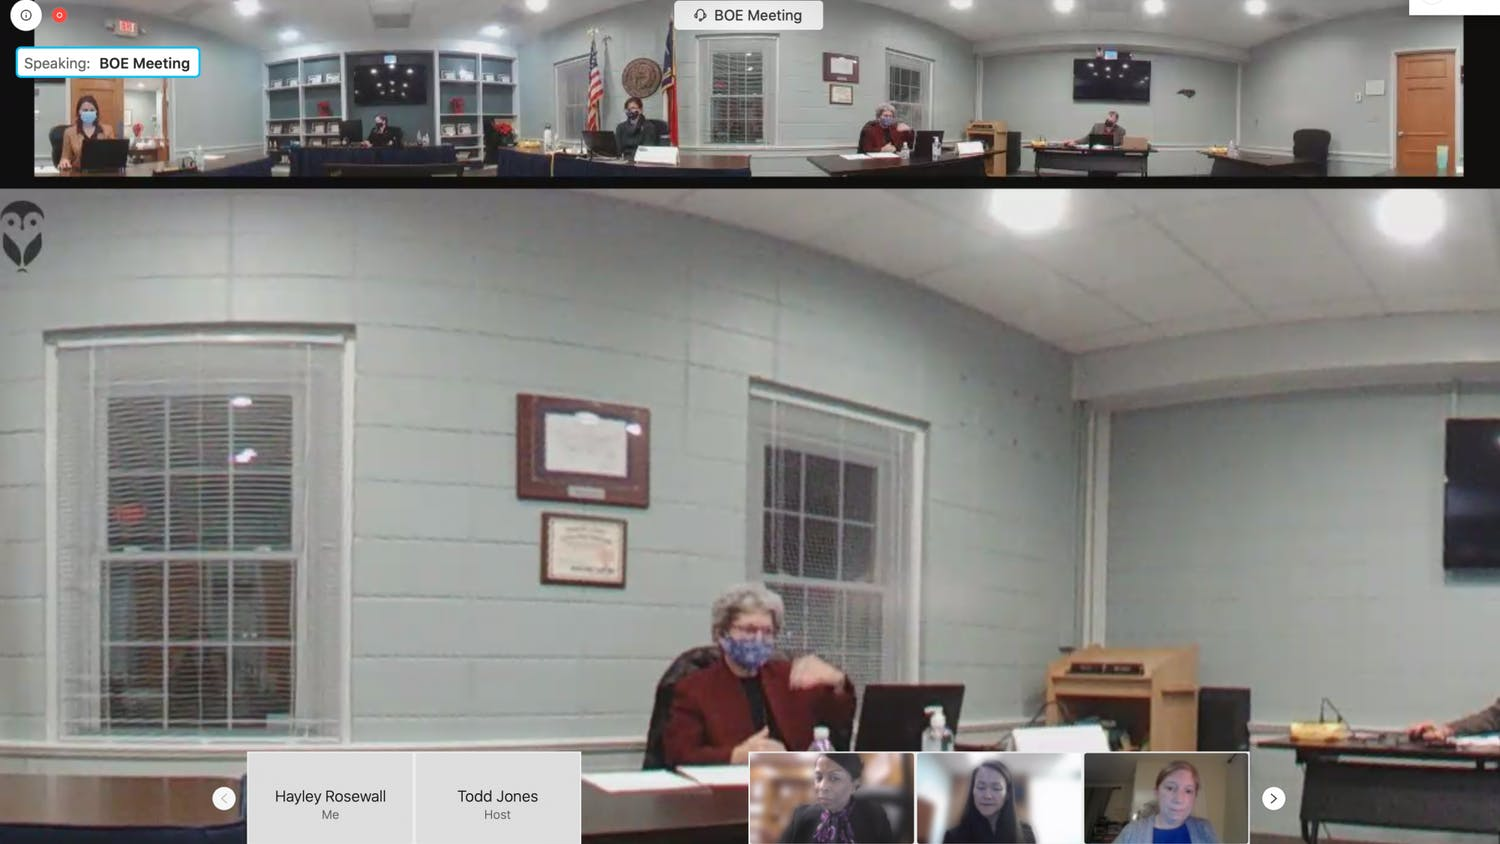 Members of the OC Board of Education met virtually on Monday, Dec. 14, 2020 to discuss COVID-19 updates and transitions to hybrid learning.